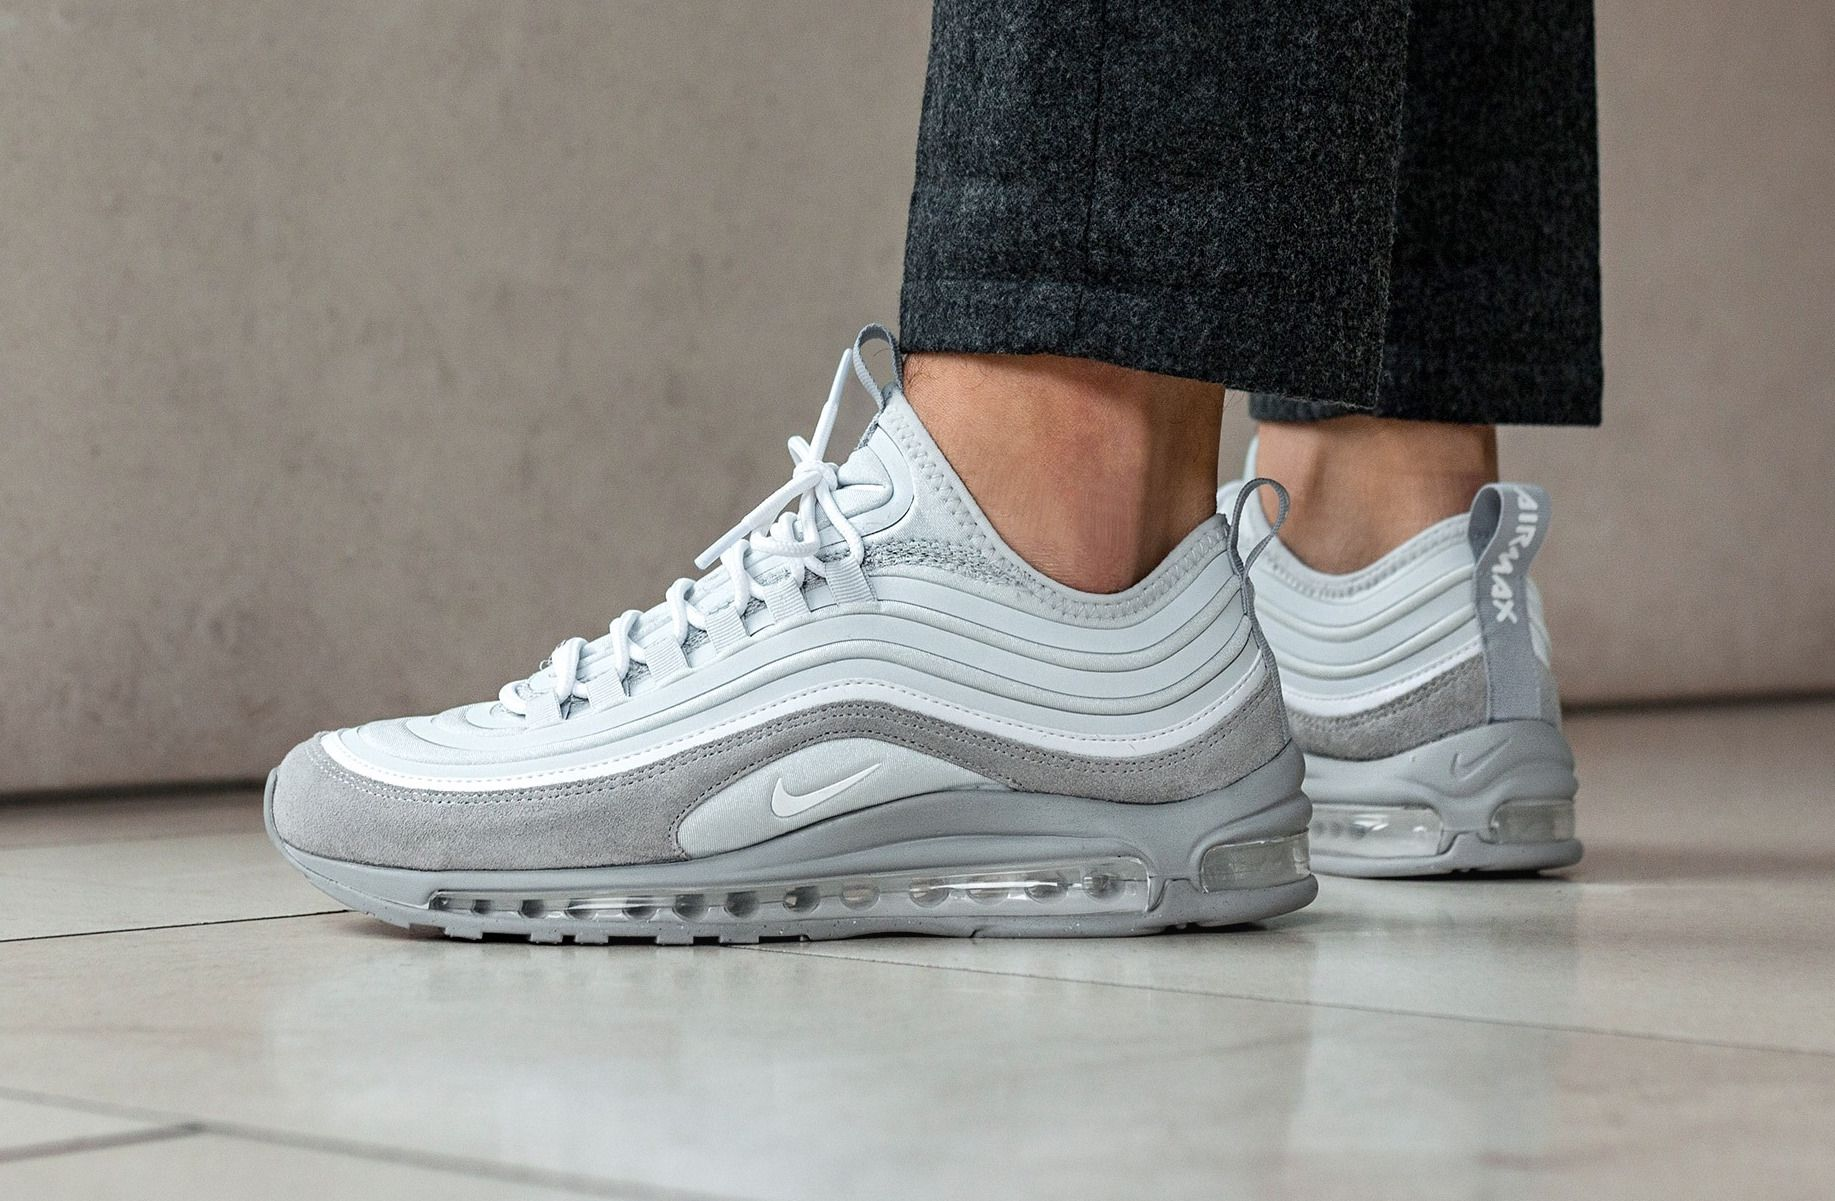 Look For The Nike Air Max 97 Ultra 17 Wolf Grey Now Nike Air Max Nike Nike Air